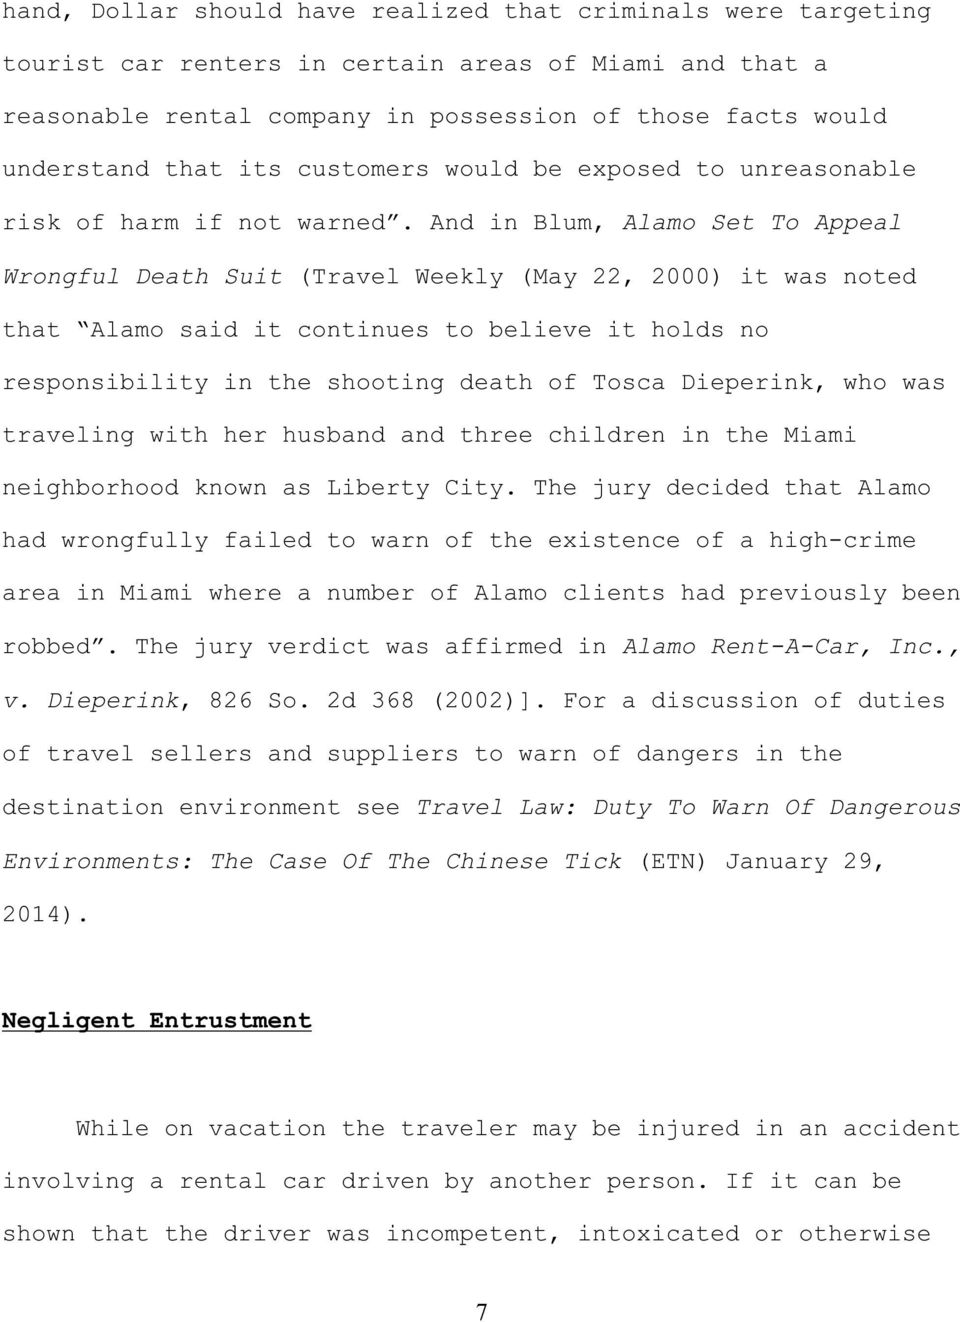 And in Blum, Alamo Set To Appeal Wrongful Death Suit (Travel Weekly (May 22, 2000) it was noted that Alamo said it continues to believe it holds no responsibility in the shooting death of Tosca